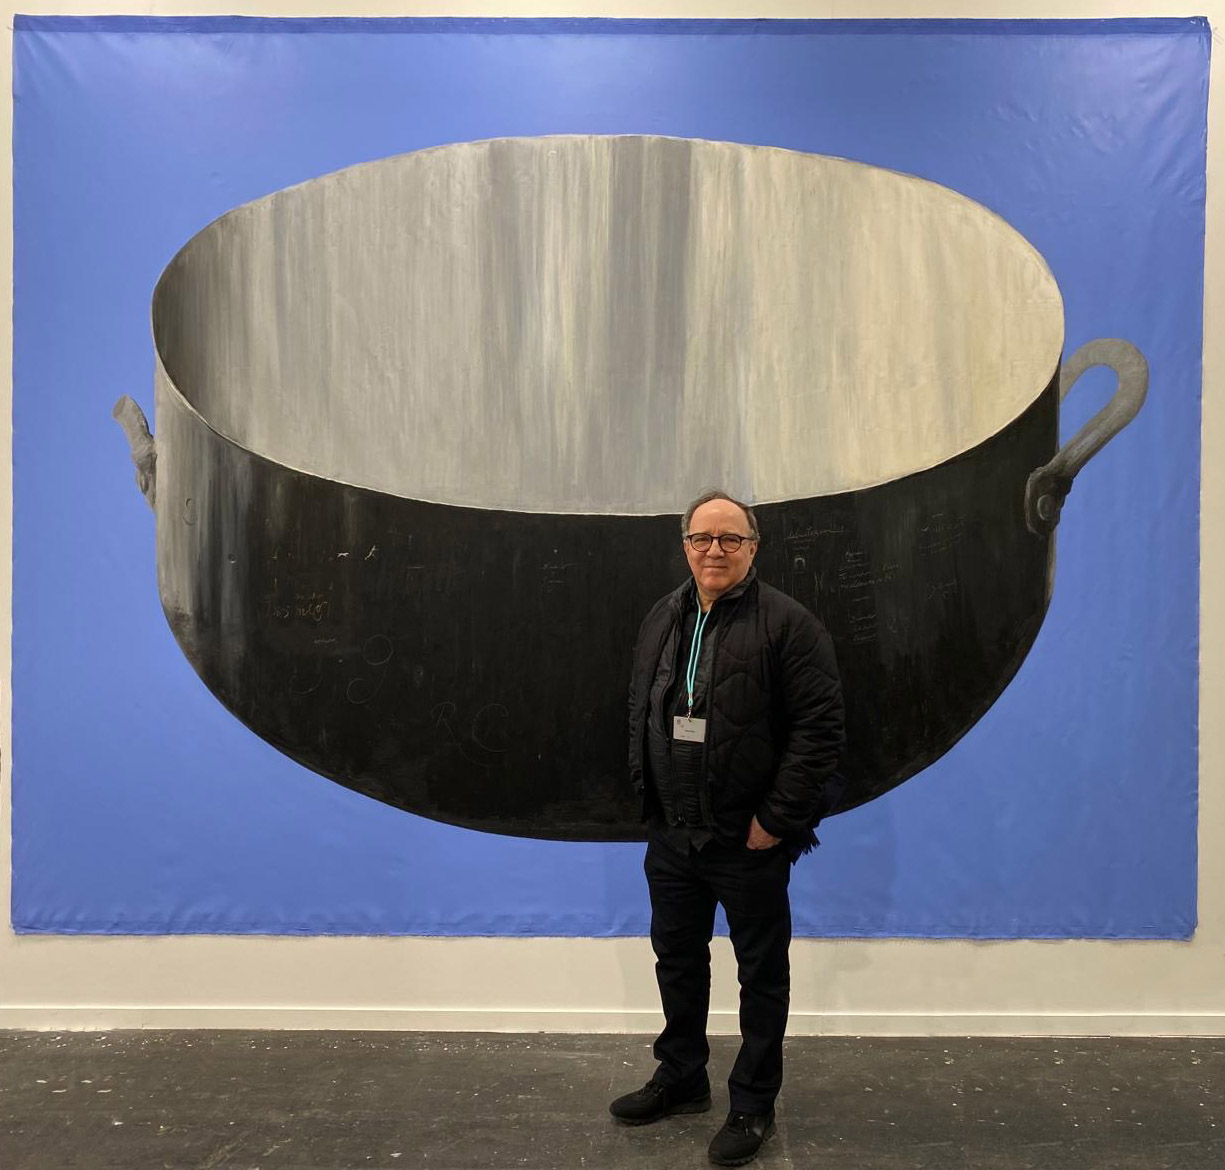 Fabelo in front of his work entitled Dios mío during the Feria de Arco. Madrid 2020.